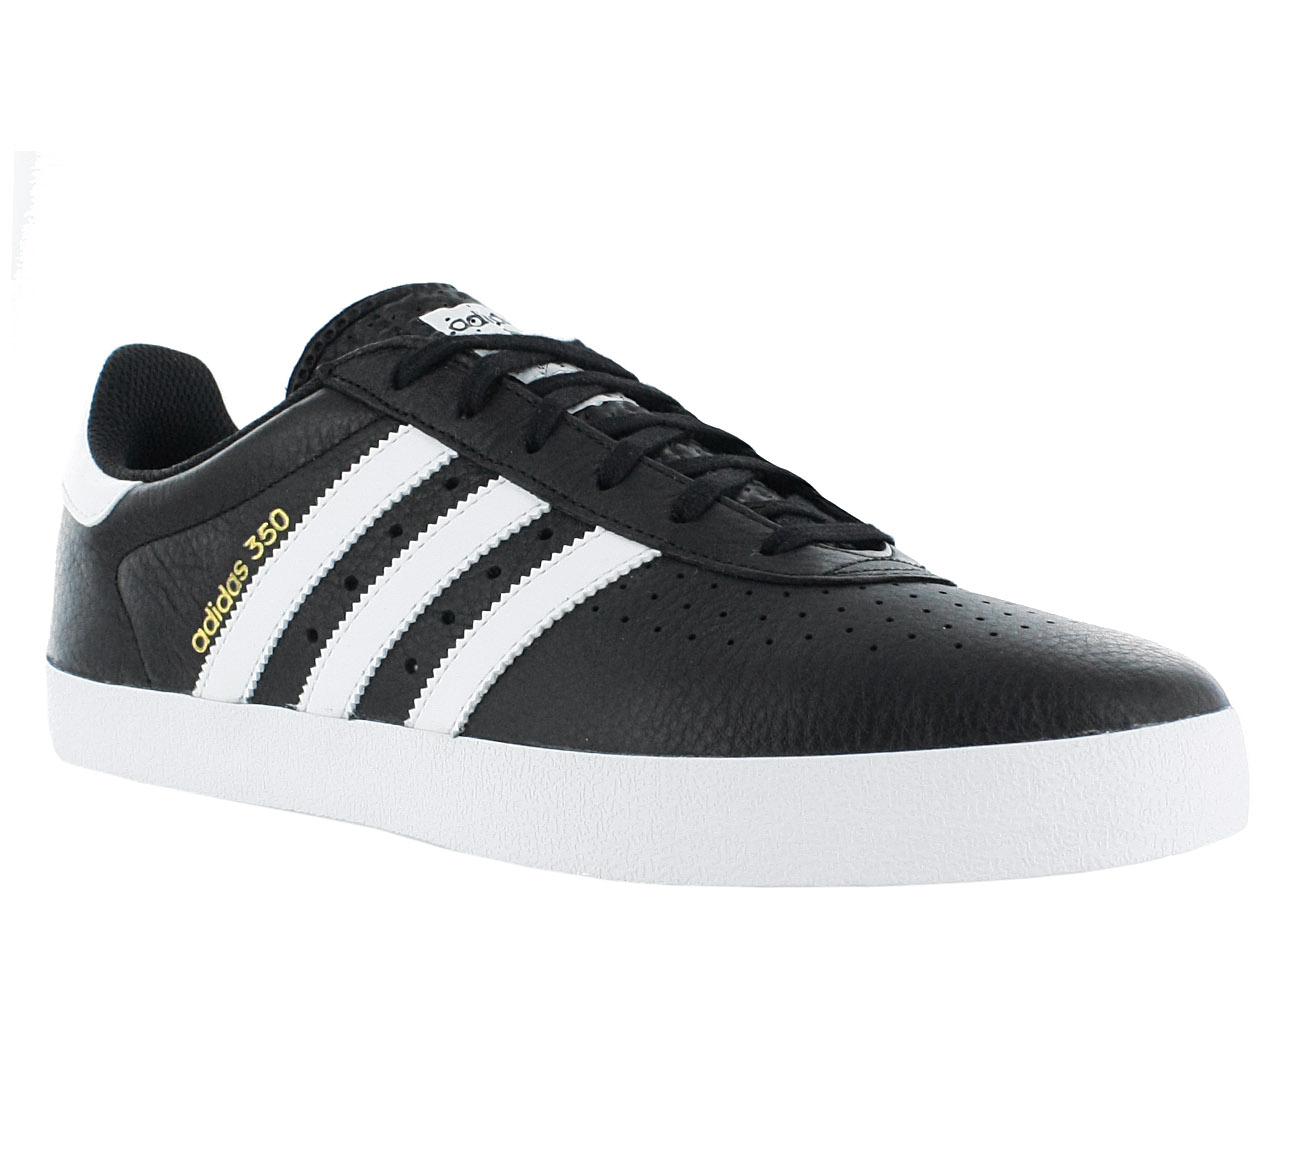 the latest 4b640 79bb3 NUOVO adidas 350 BY9761 Uomo Scarpe Sneaker SALE